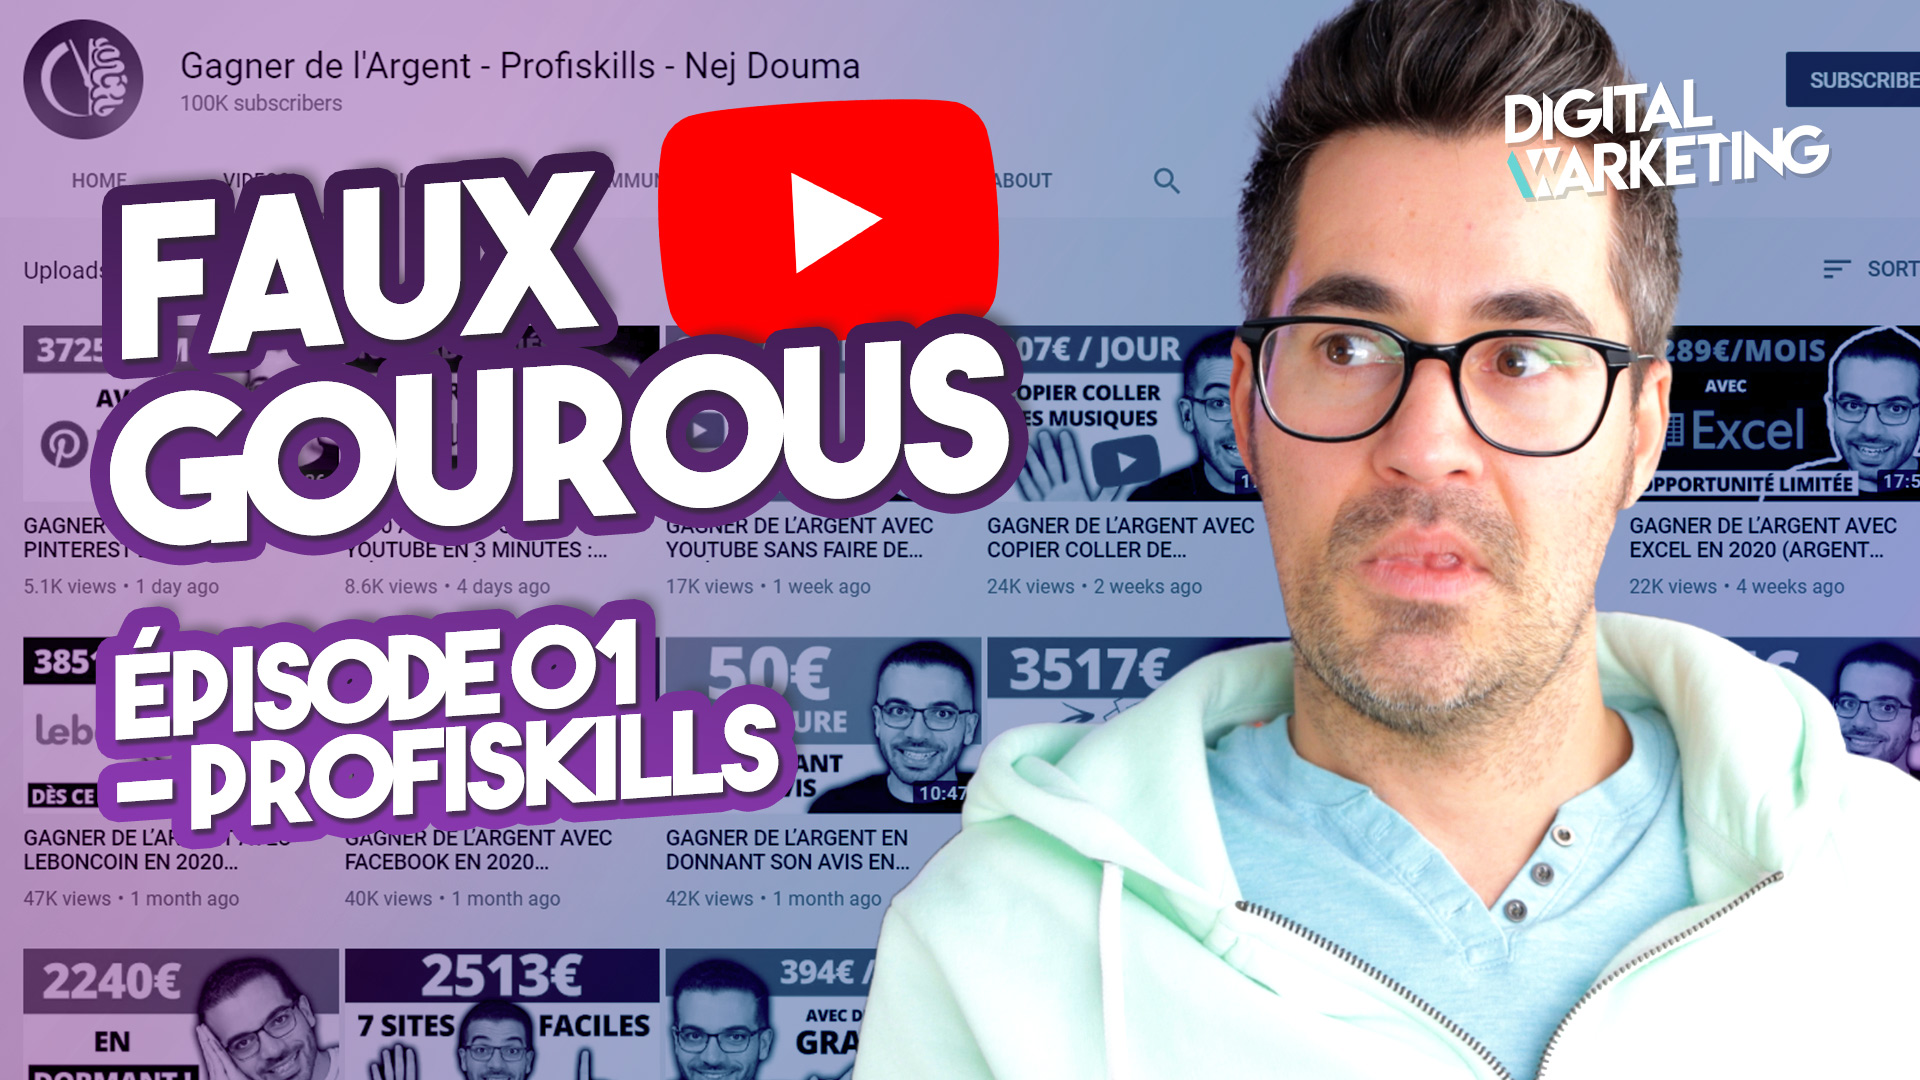 Faux gourou marketing / Ep.01 – Profiskills